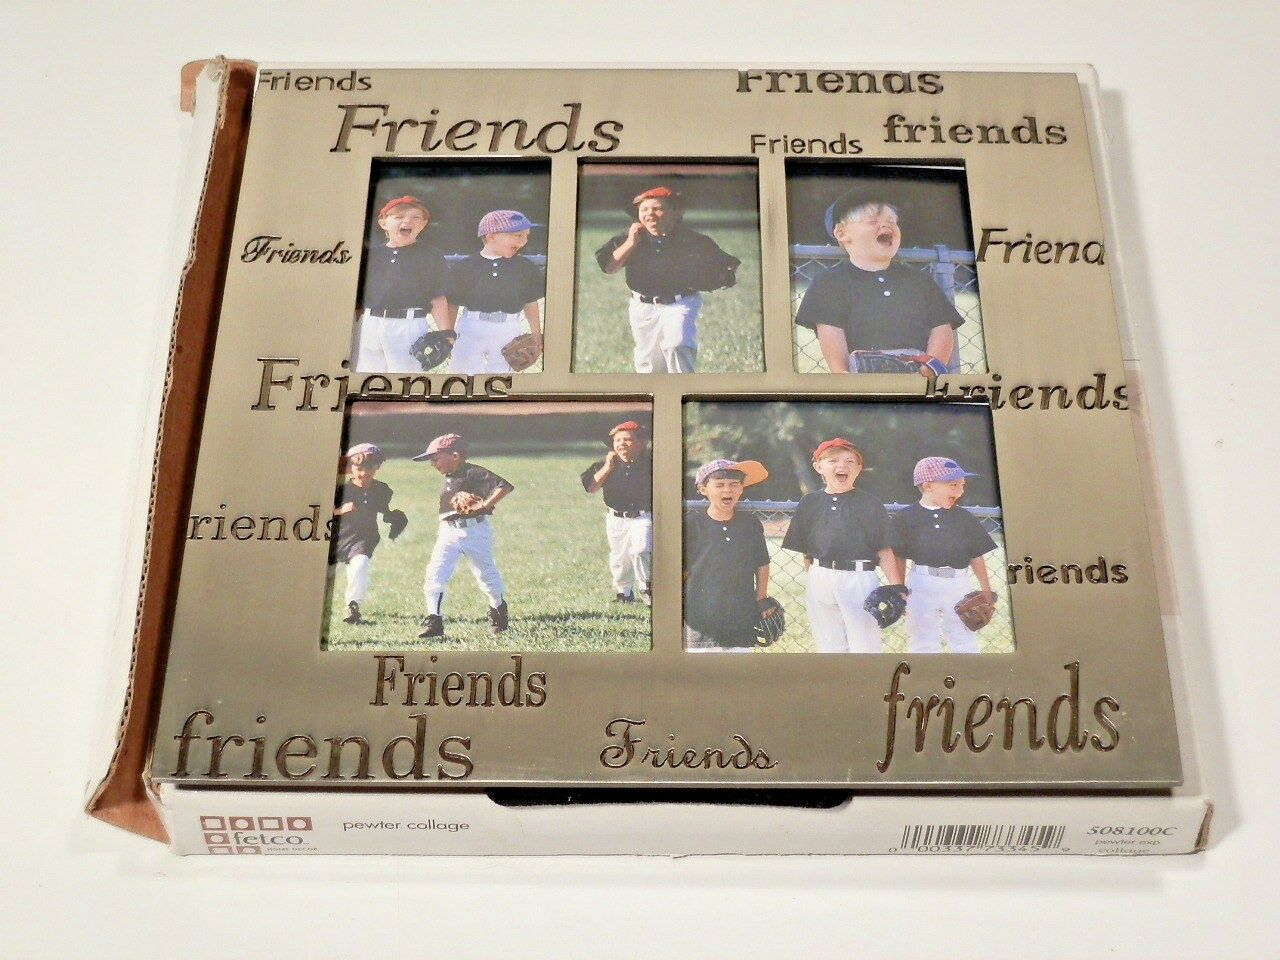 Fetco pewter collage friends picture frame holds 5 pictures ebay picture 1 of 3 jeuxipadfo Gallery